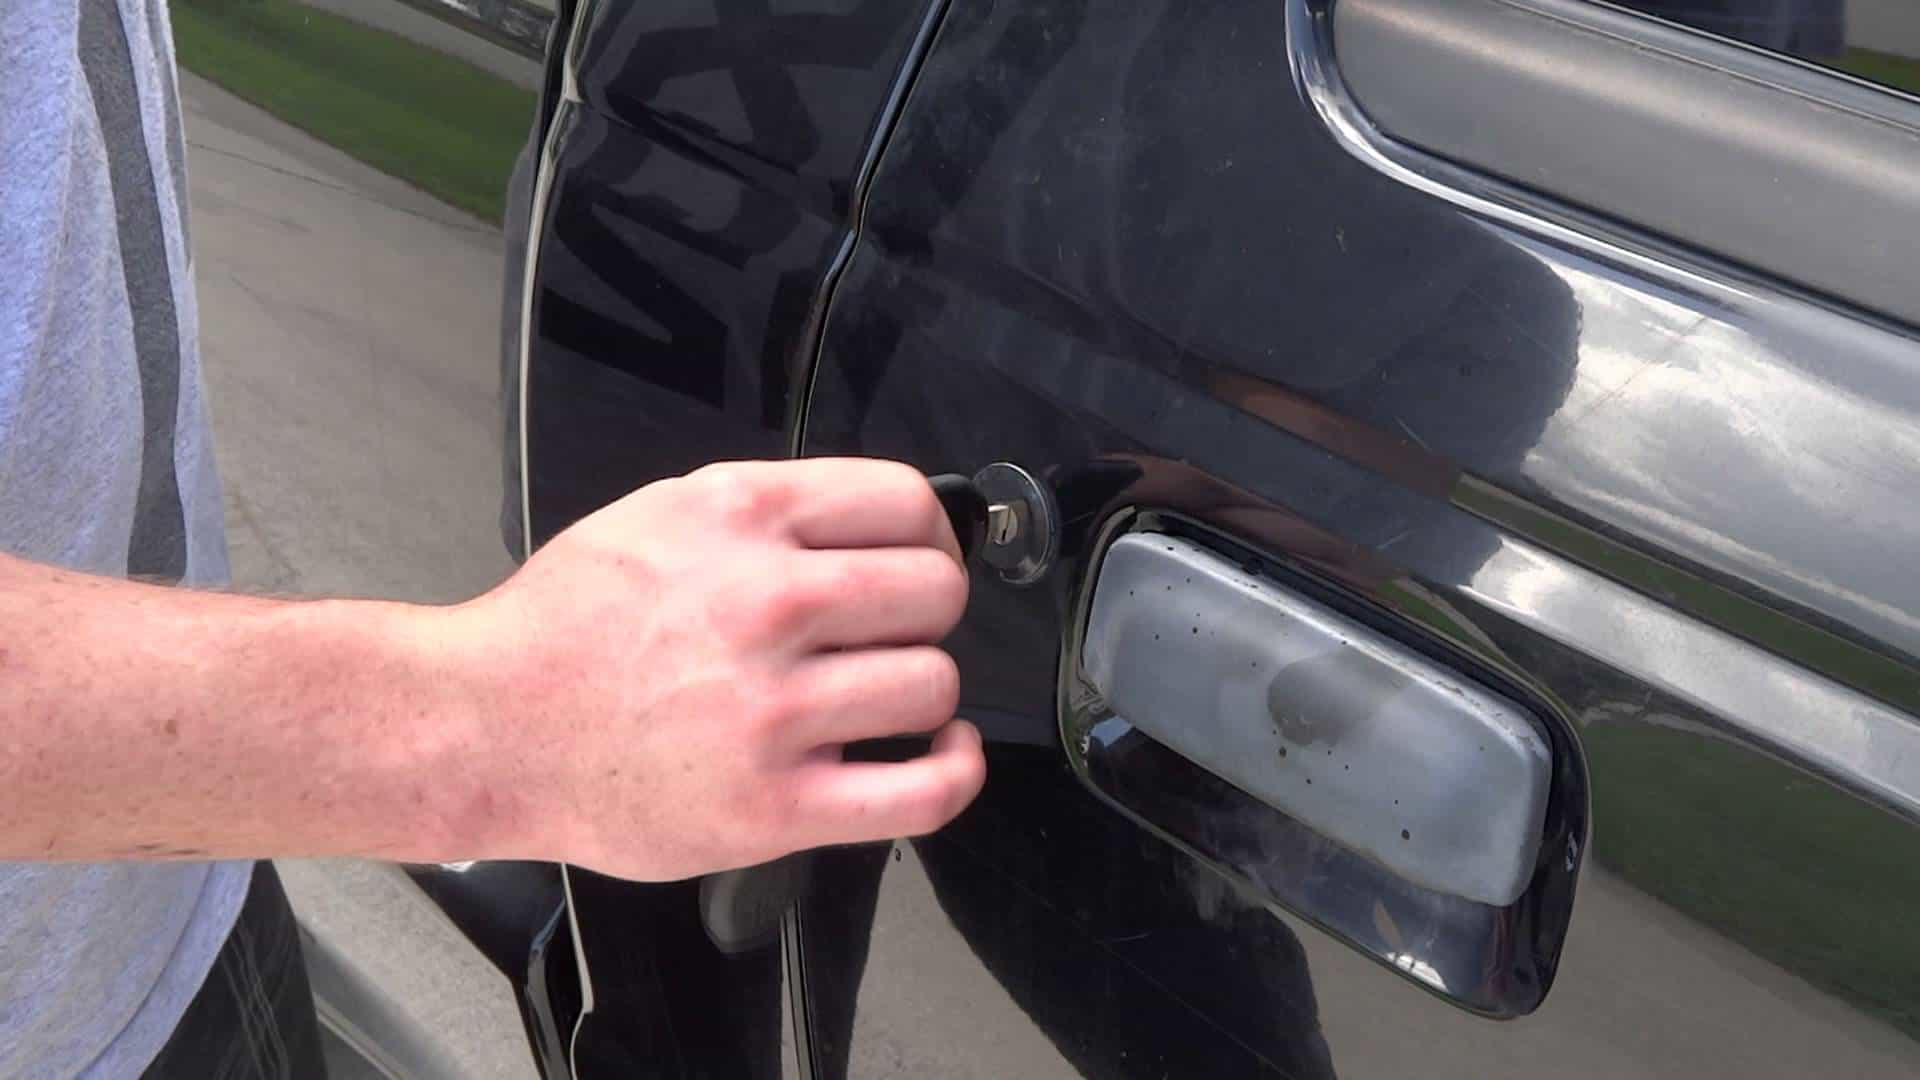 How to fix a car door that wont open